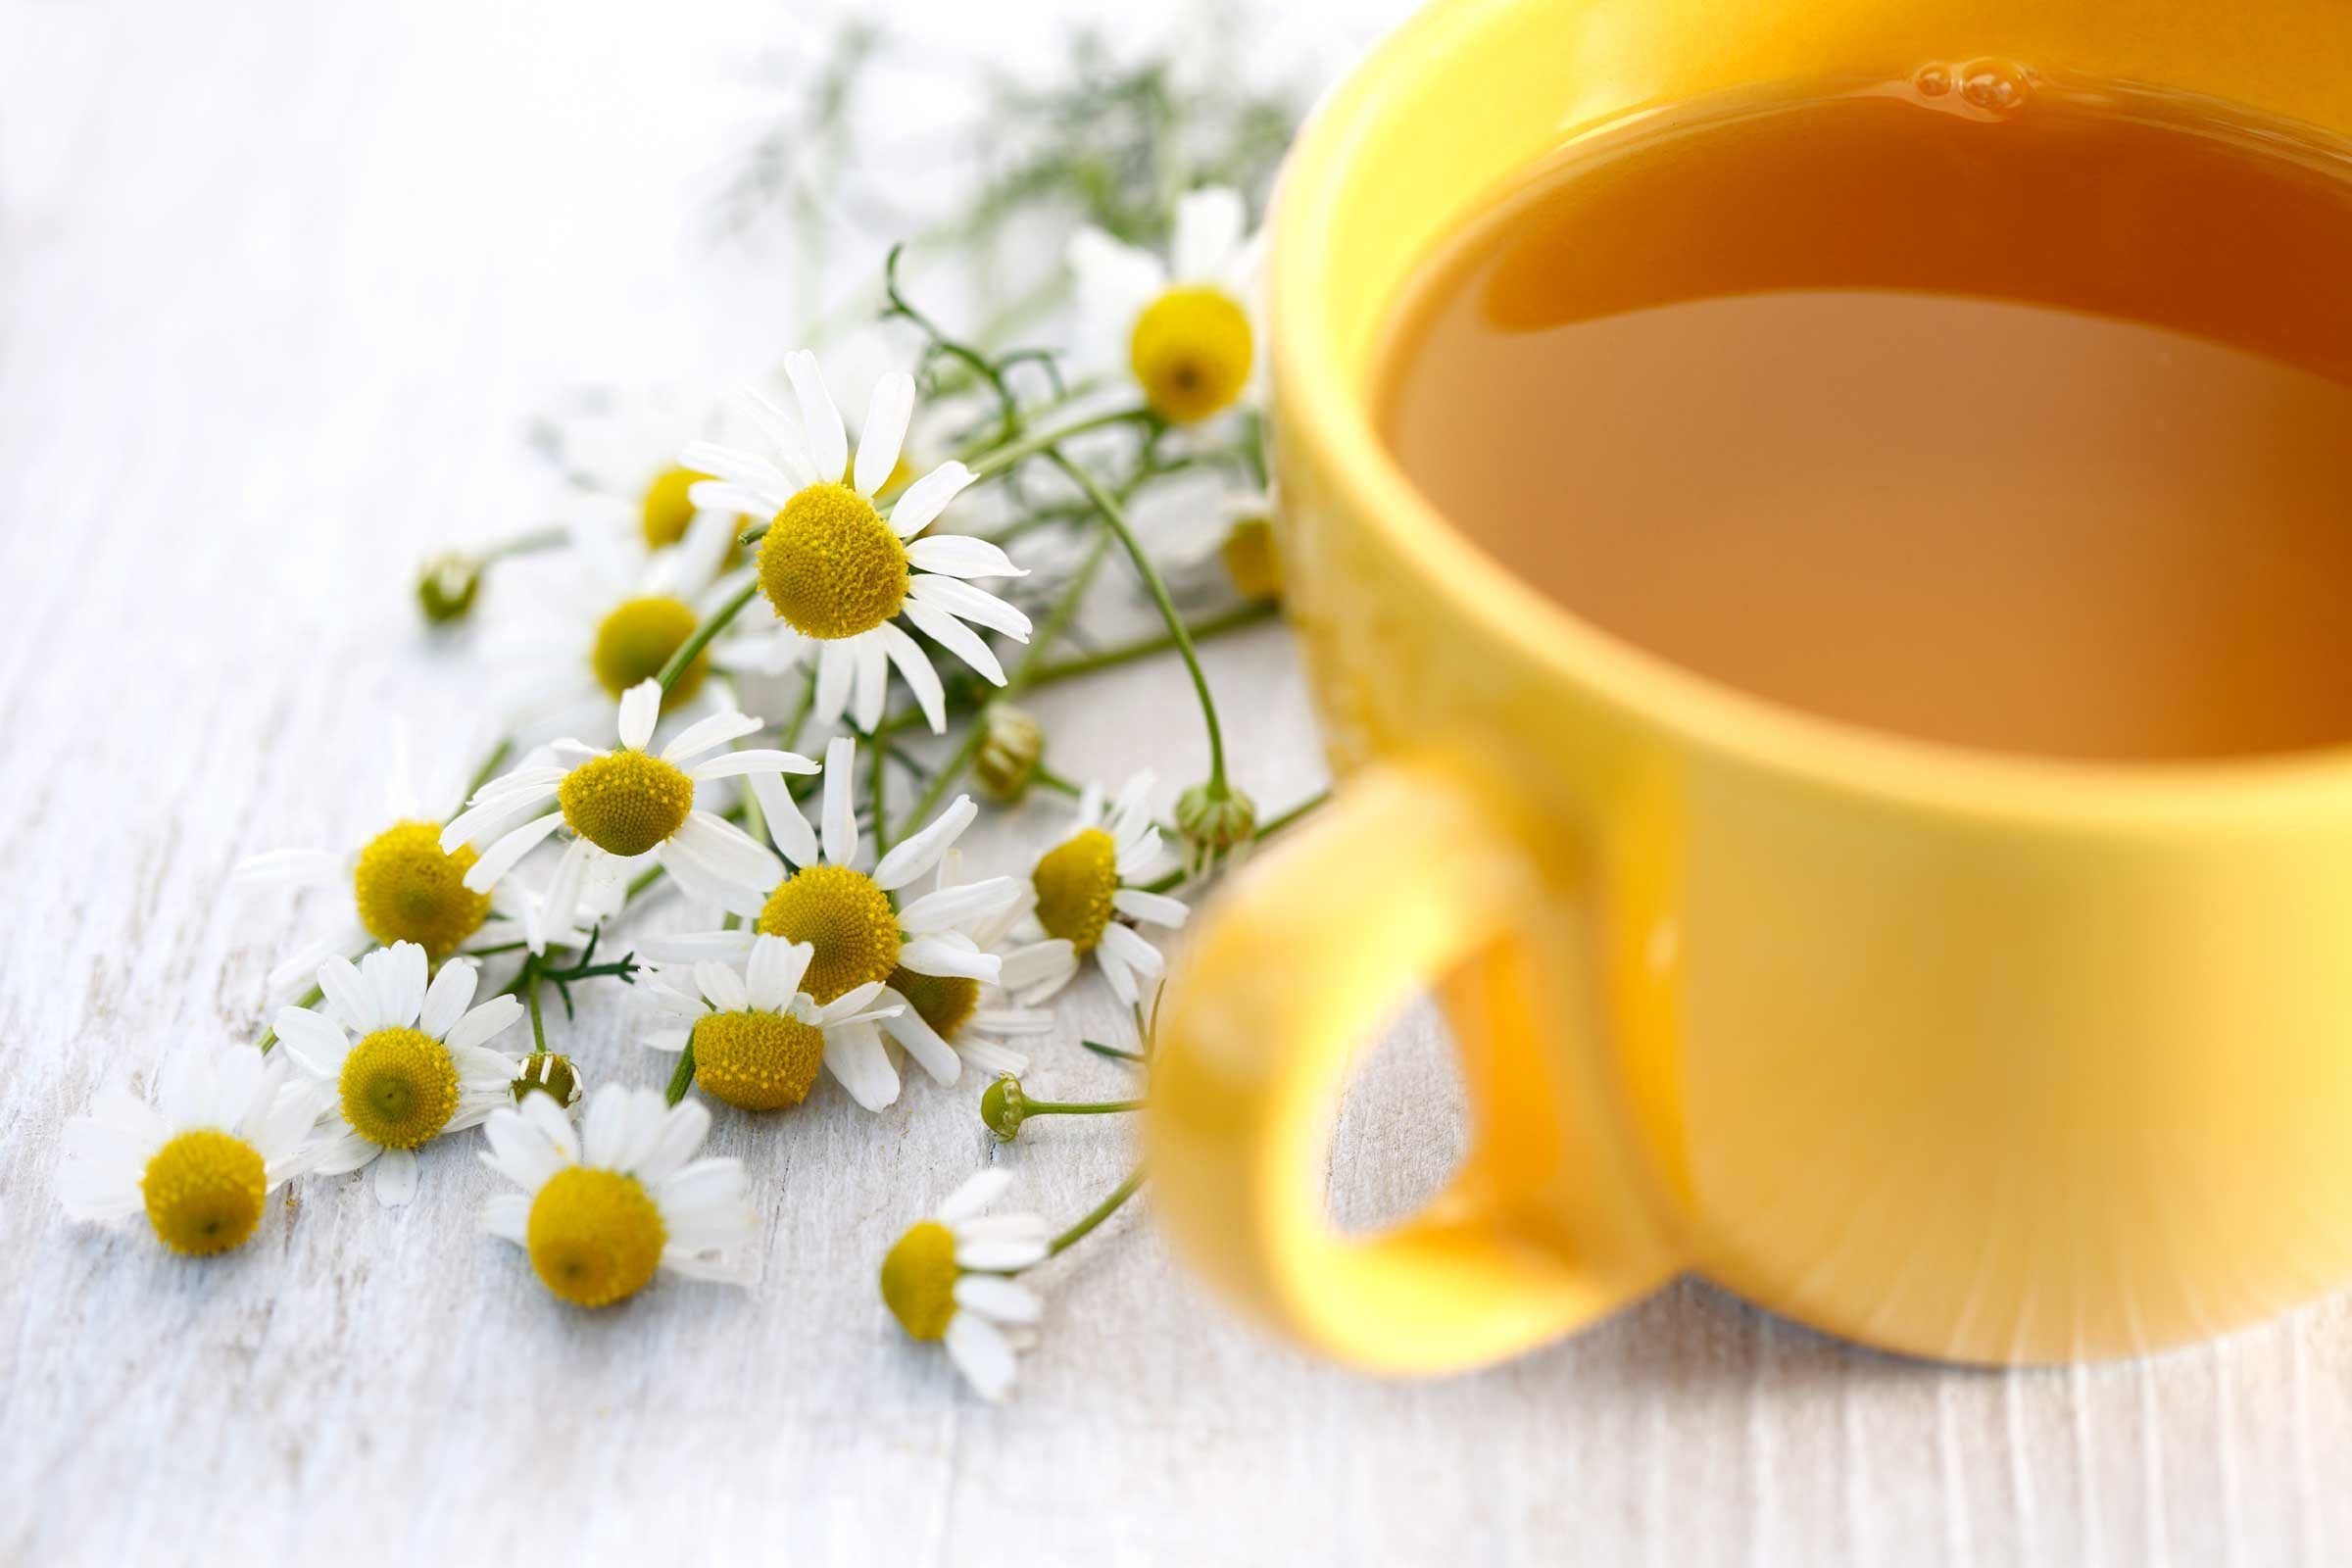 Calm the burn with chamomile